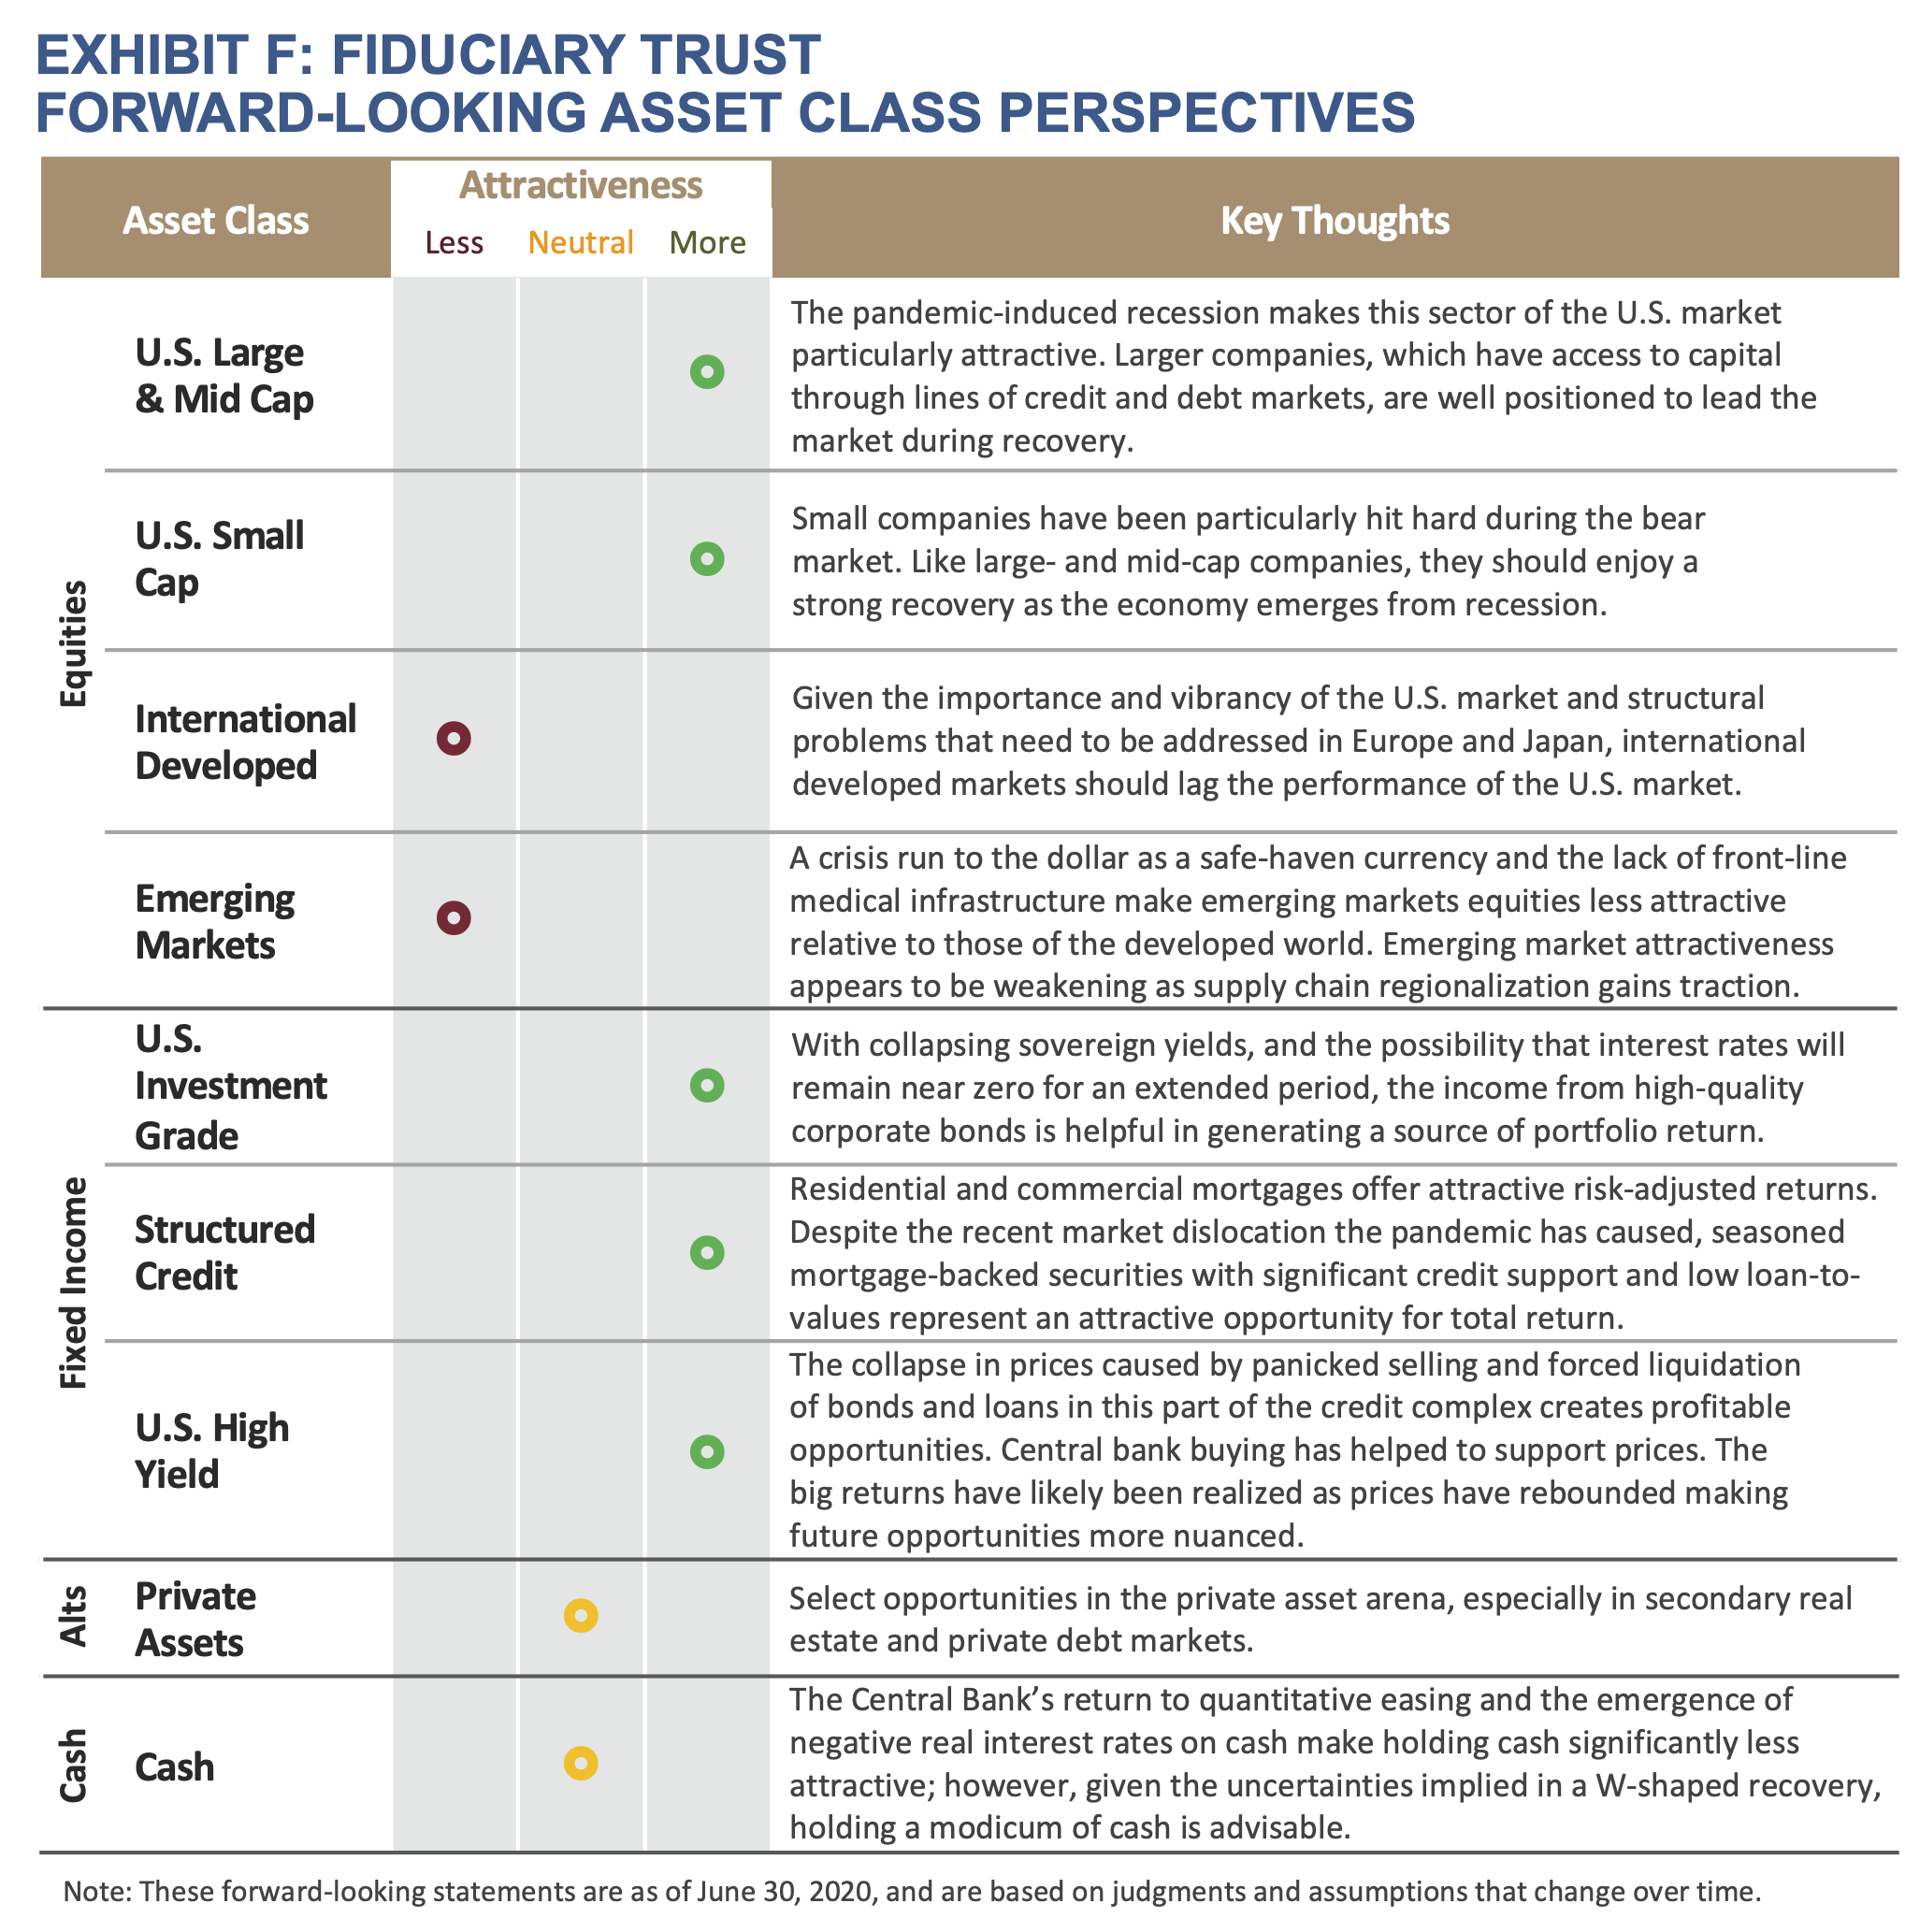 Exhibit F: Fiduciary Trust Forward-Looking Asset Class Perspectives